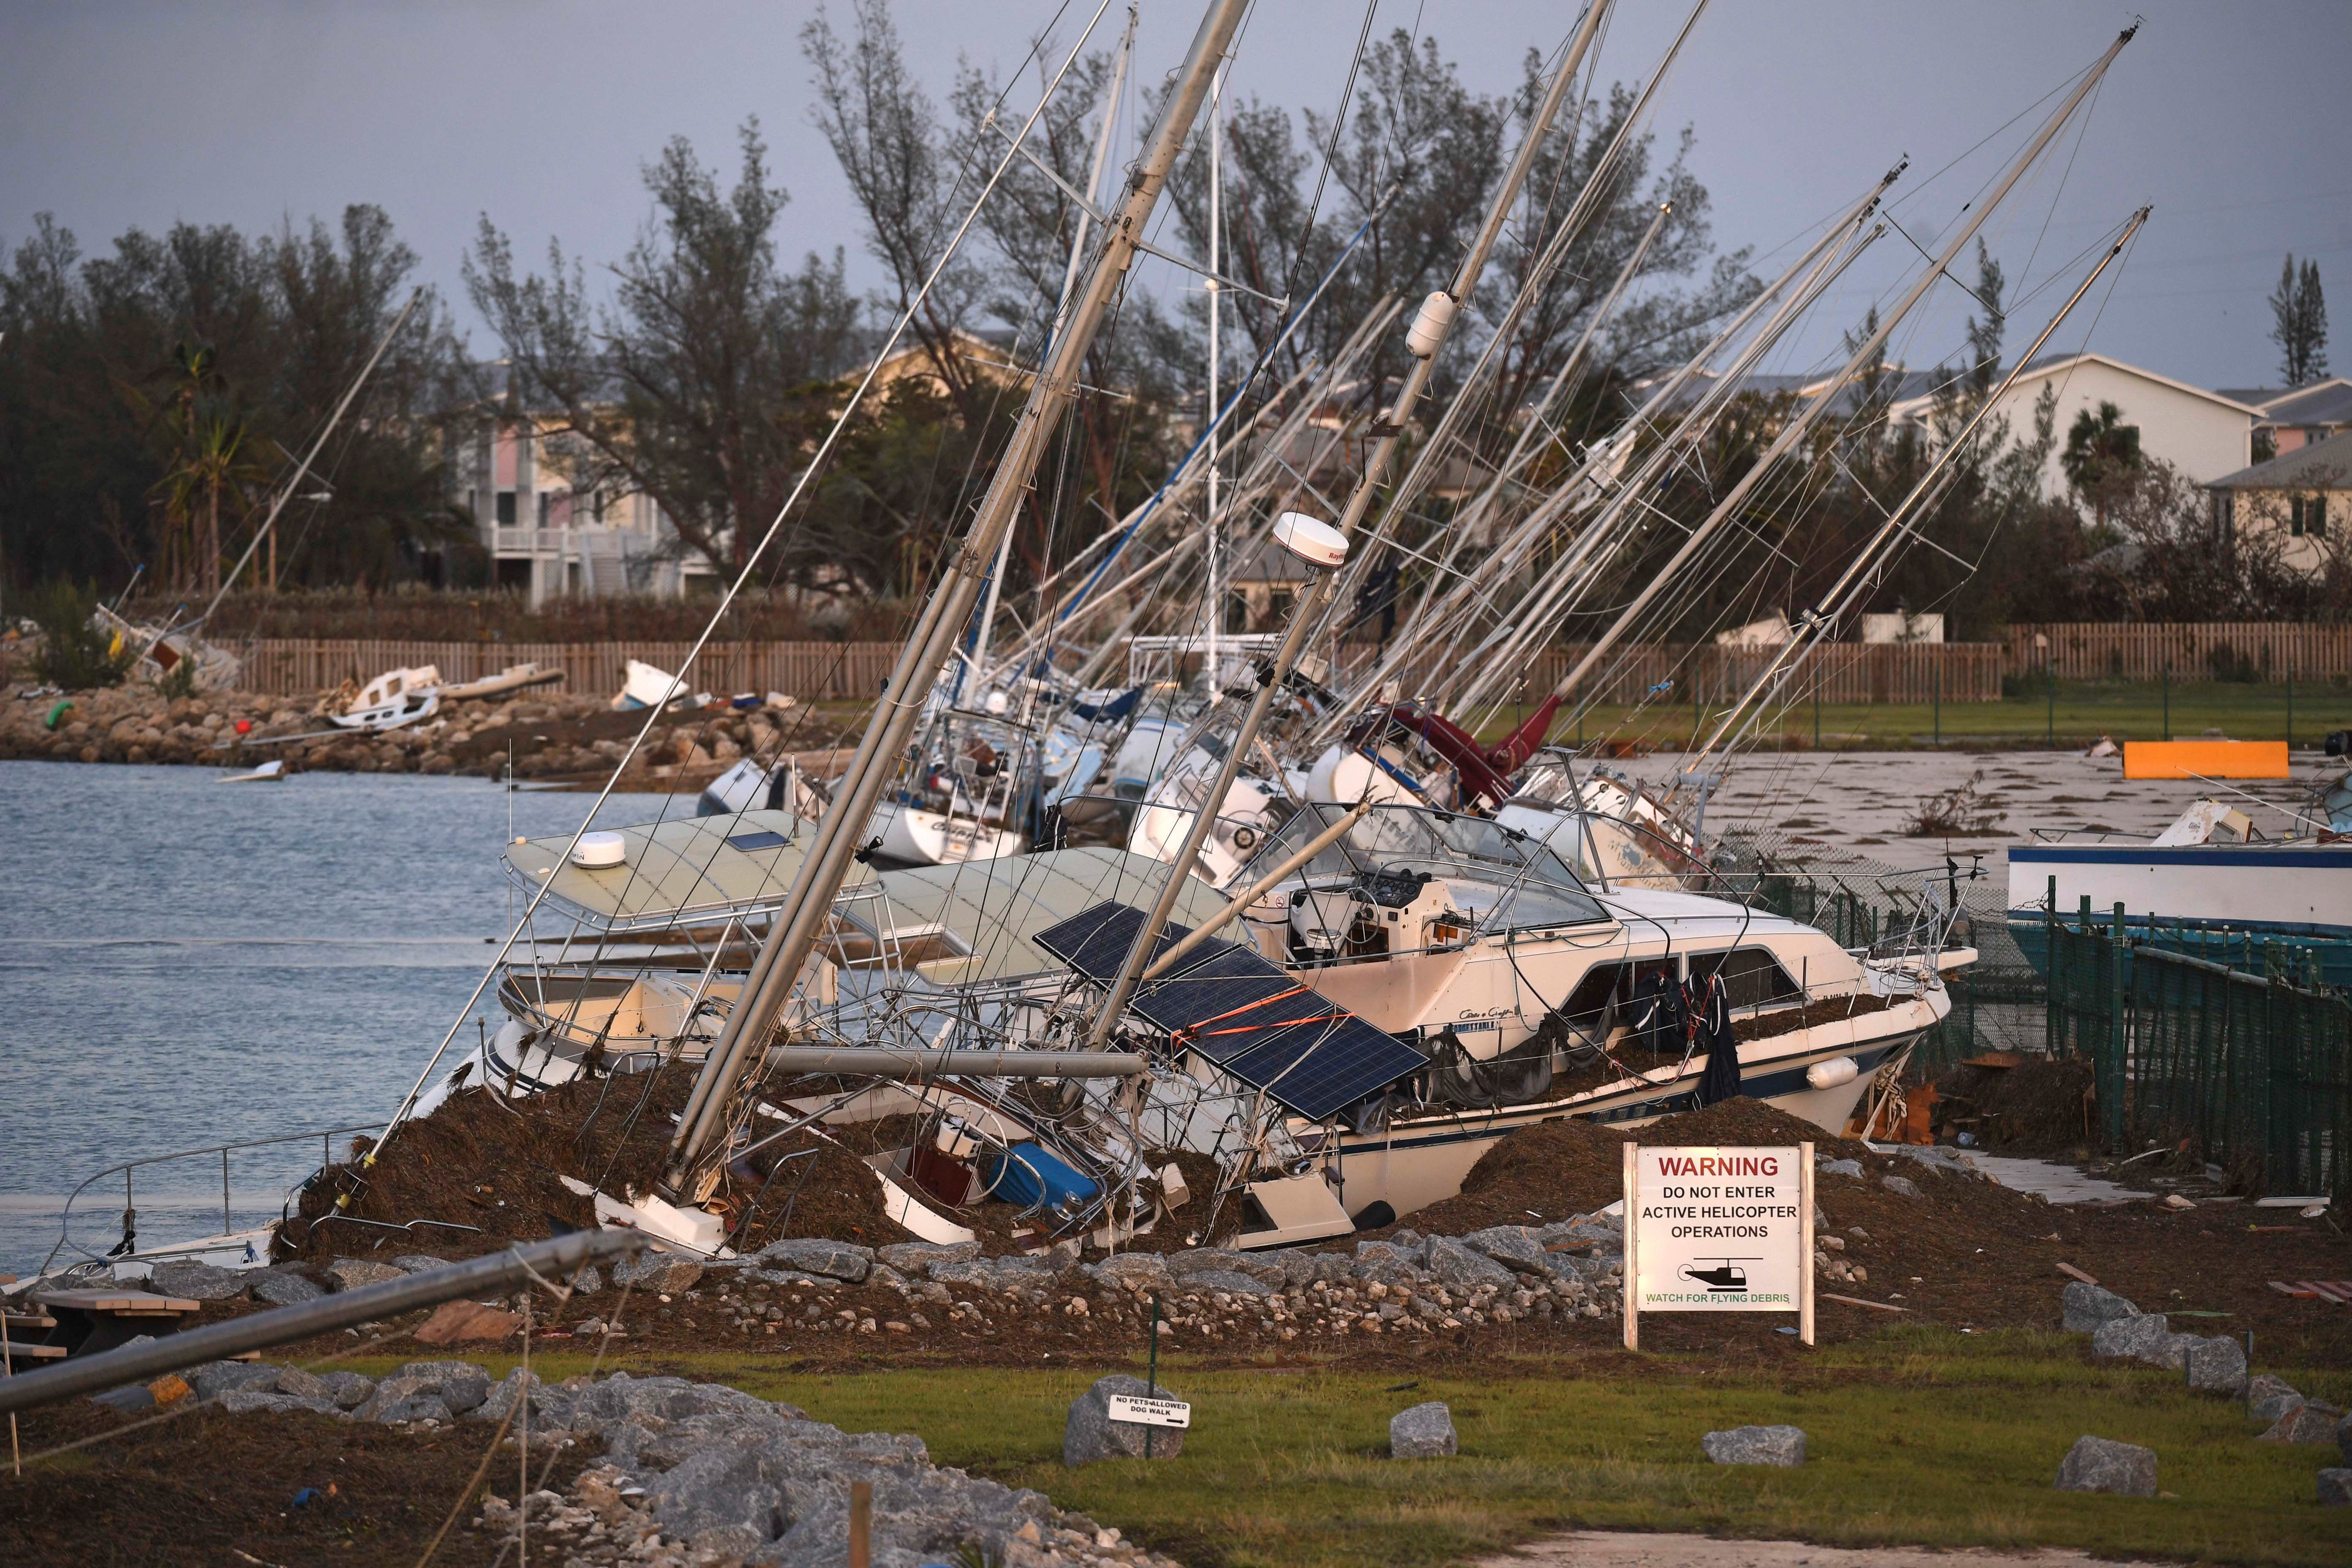 Pool via Getty Images Damaged sail boats are shown in the aftermath of Hurricane Irma on Monday in Key West Florida